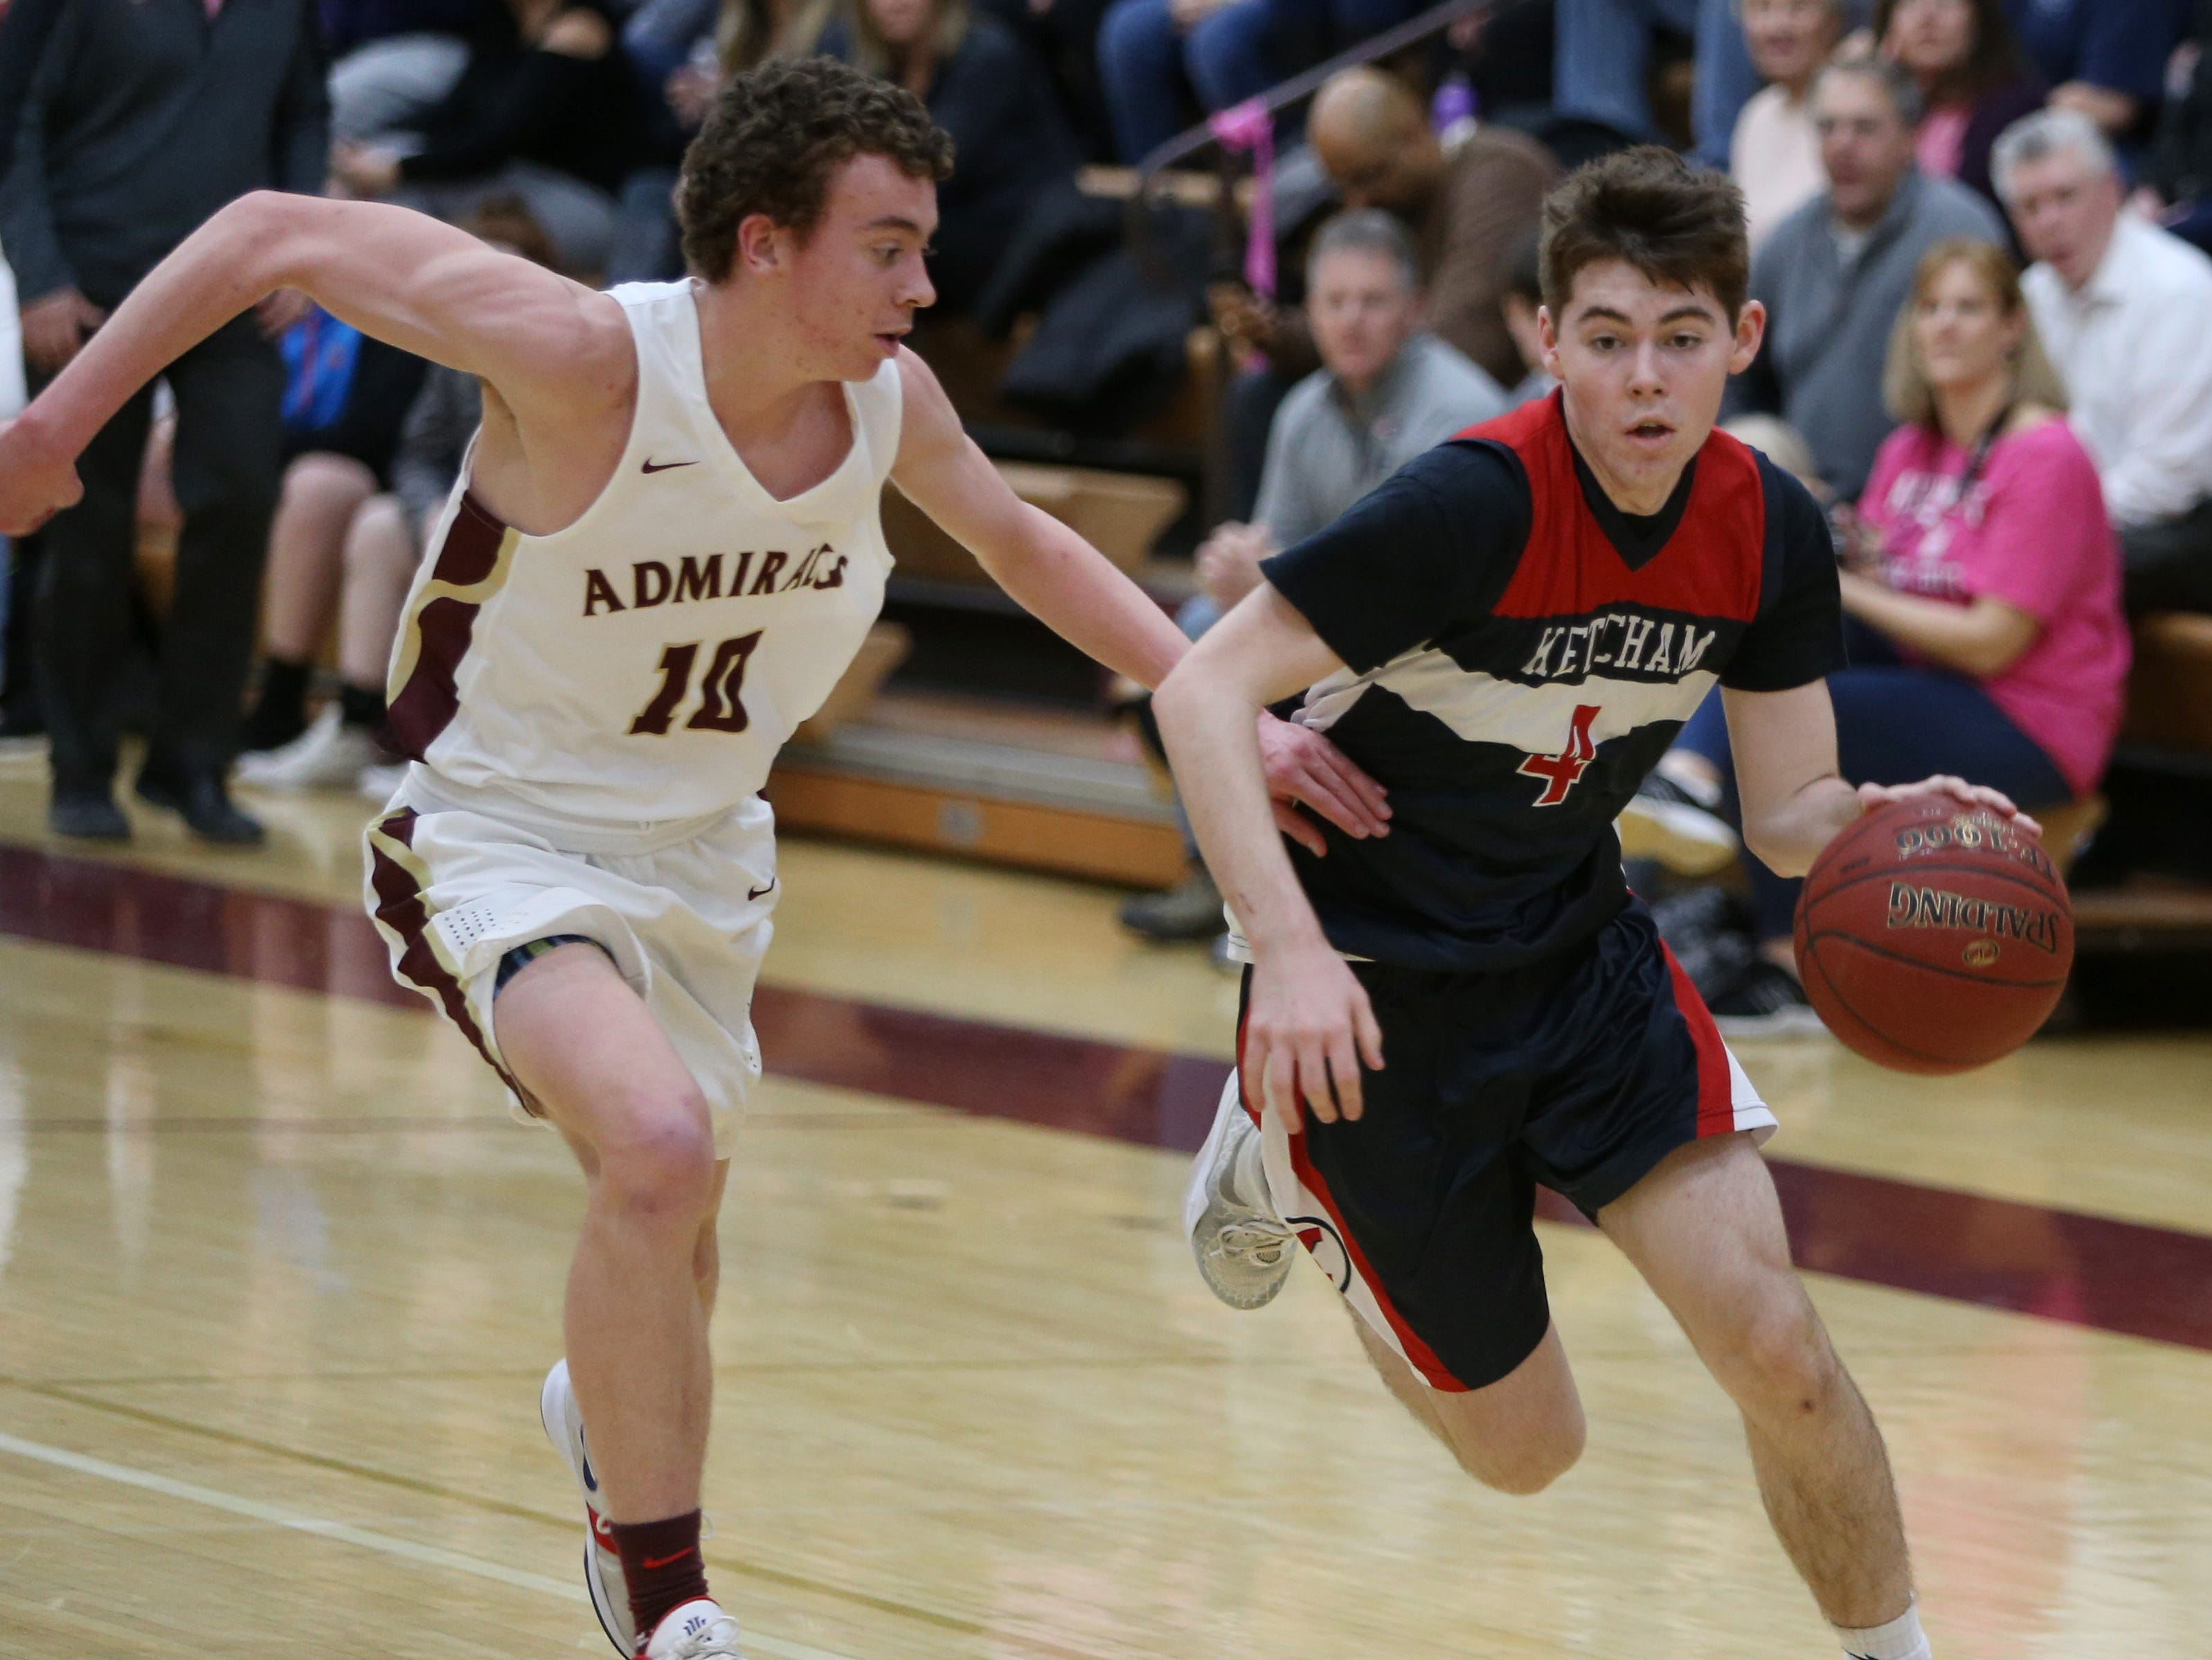 Action from Wednesday's game between Arlington and Roy C. Ketcham in Freedom Plains on February 6, 2019.